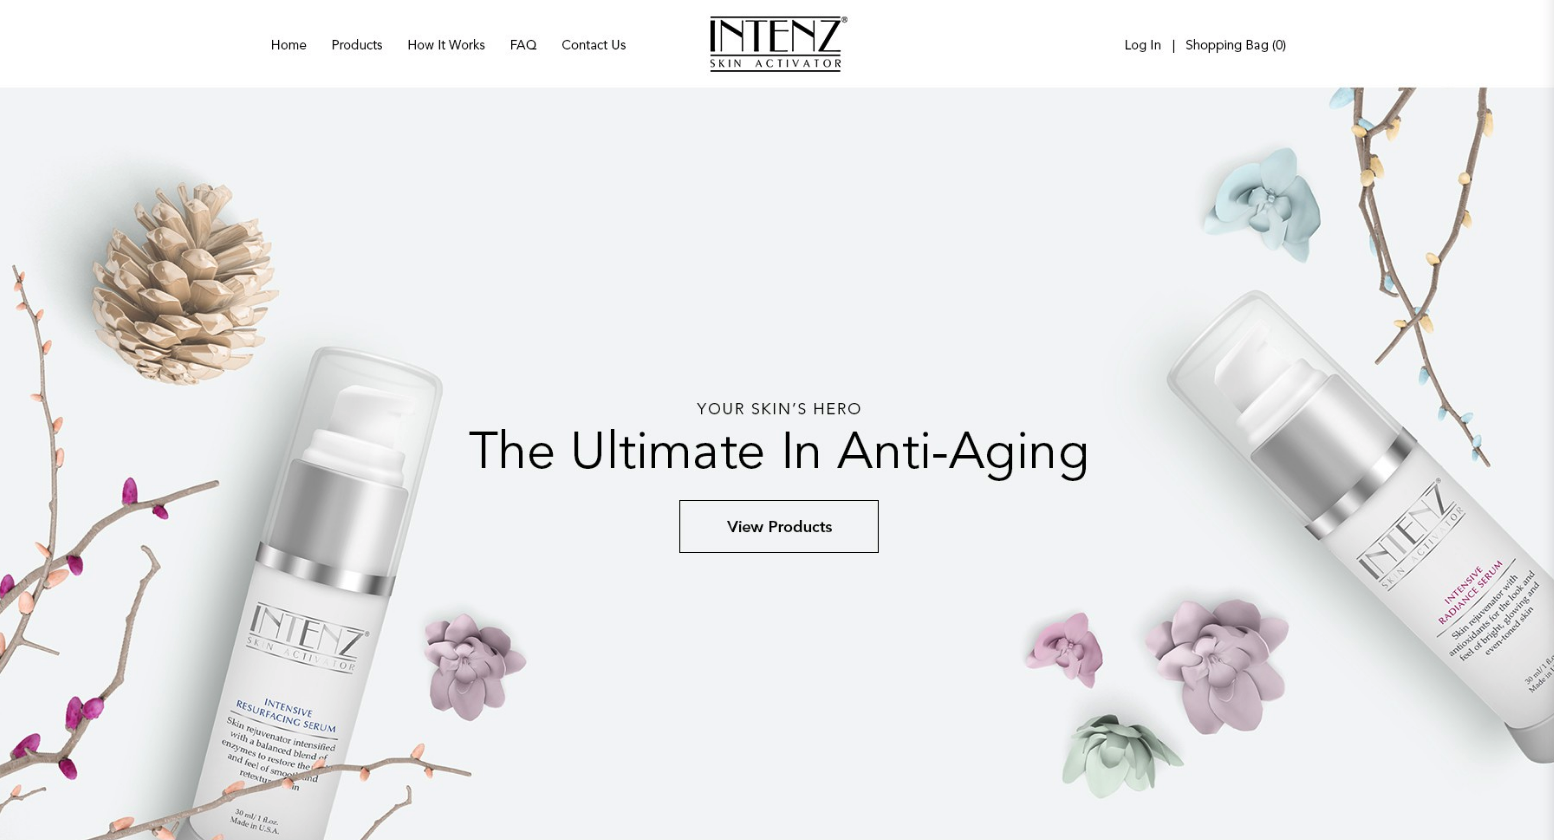 cosmetics company homepage with product image and View Products CTA